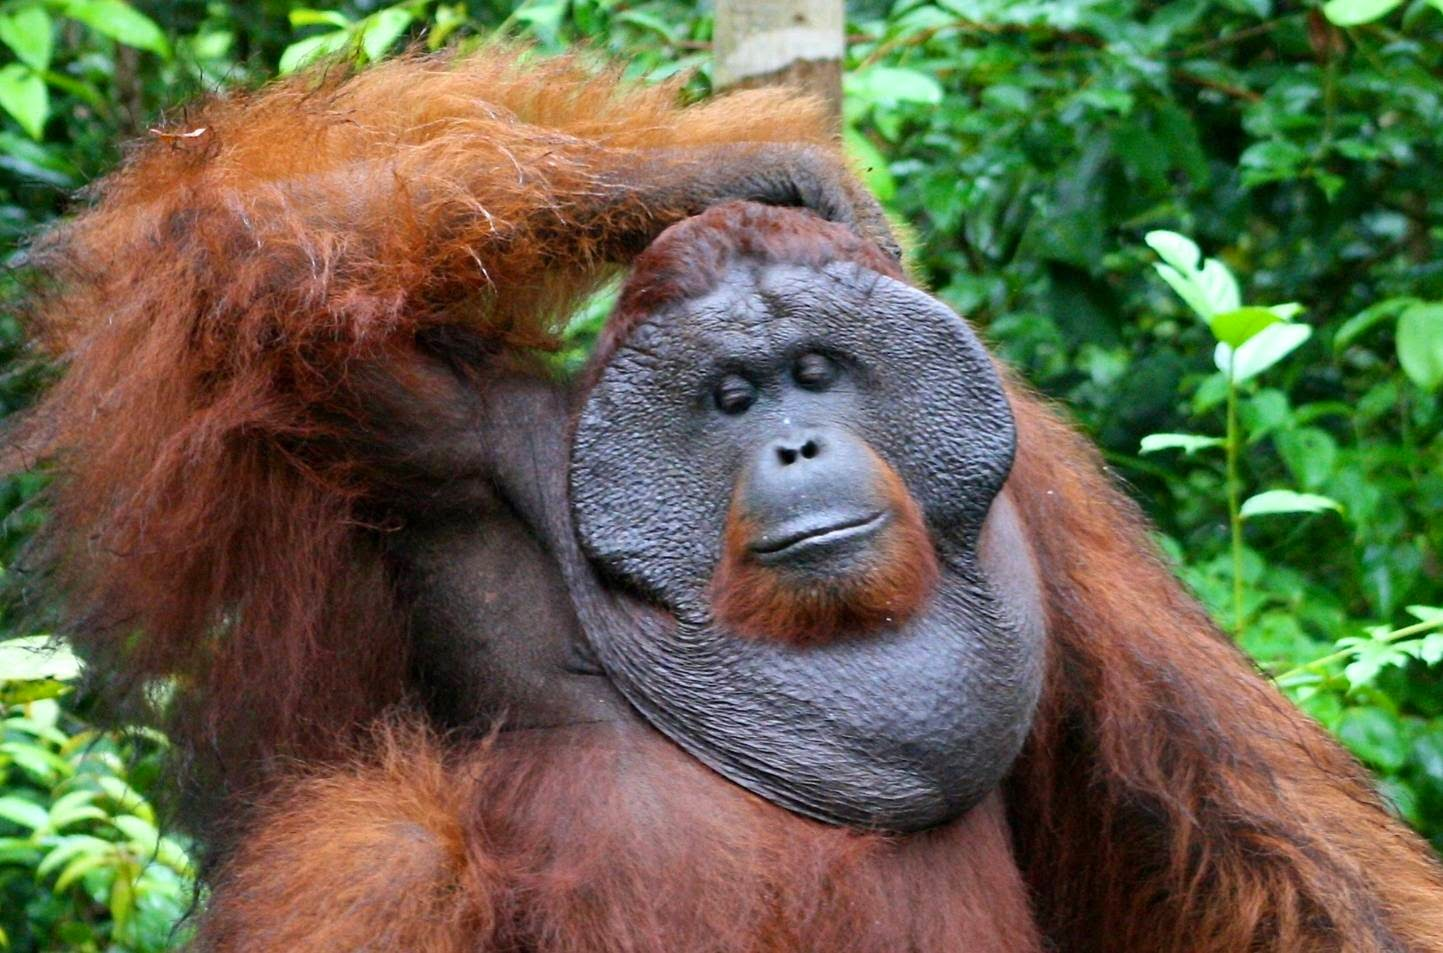 High Resolution Wallpaper | Orangutan 1443x953 px